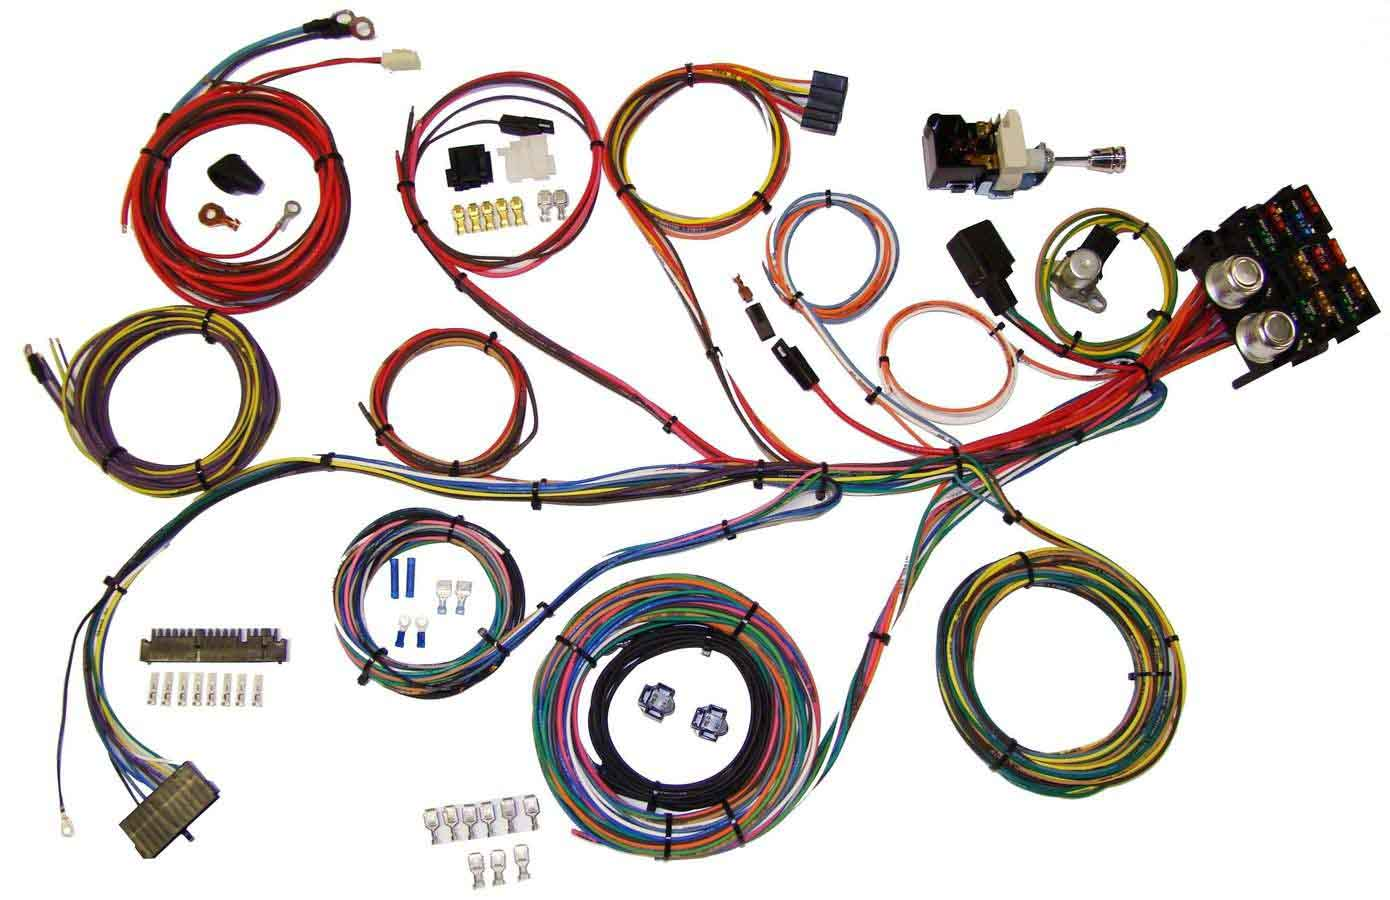 Shop for Street Rod :: Indy Auto Parts Universal Auto Wiring Harness Kits on universal gasket kit, universal bracket kit, universal grille kit, universal exhaust kit, universal intercooler kit, universal horn kit, universal headlight kit, universal aircraft harness kit, universal clutch kit,